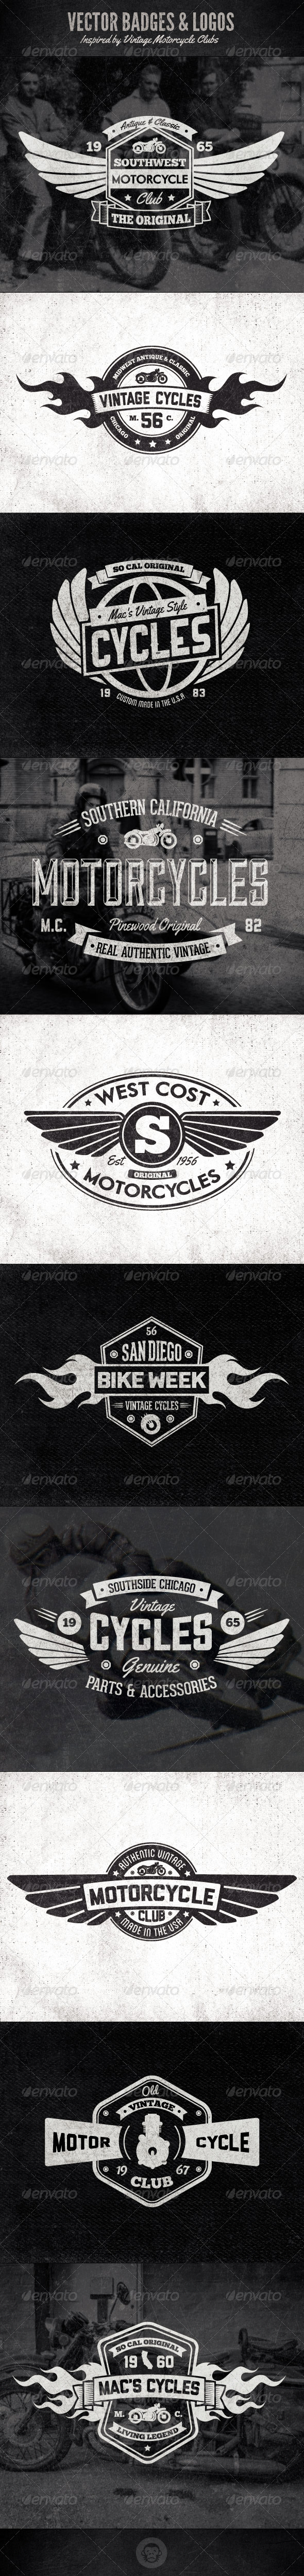 GraphicRiver Vintage Badges and Logos Motorcyle Inspired 6331997